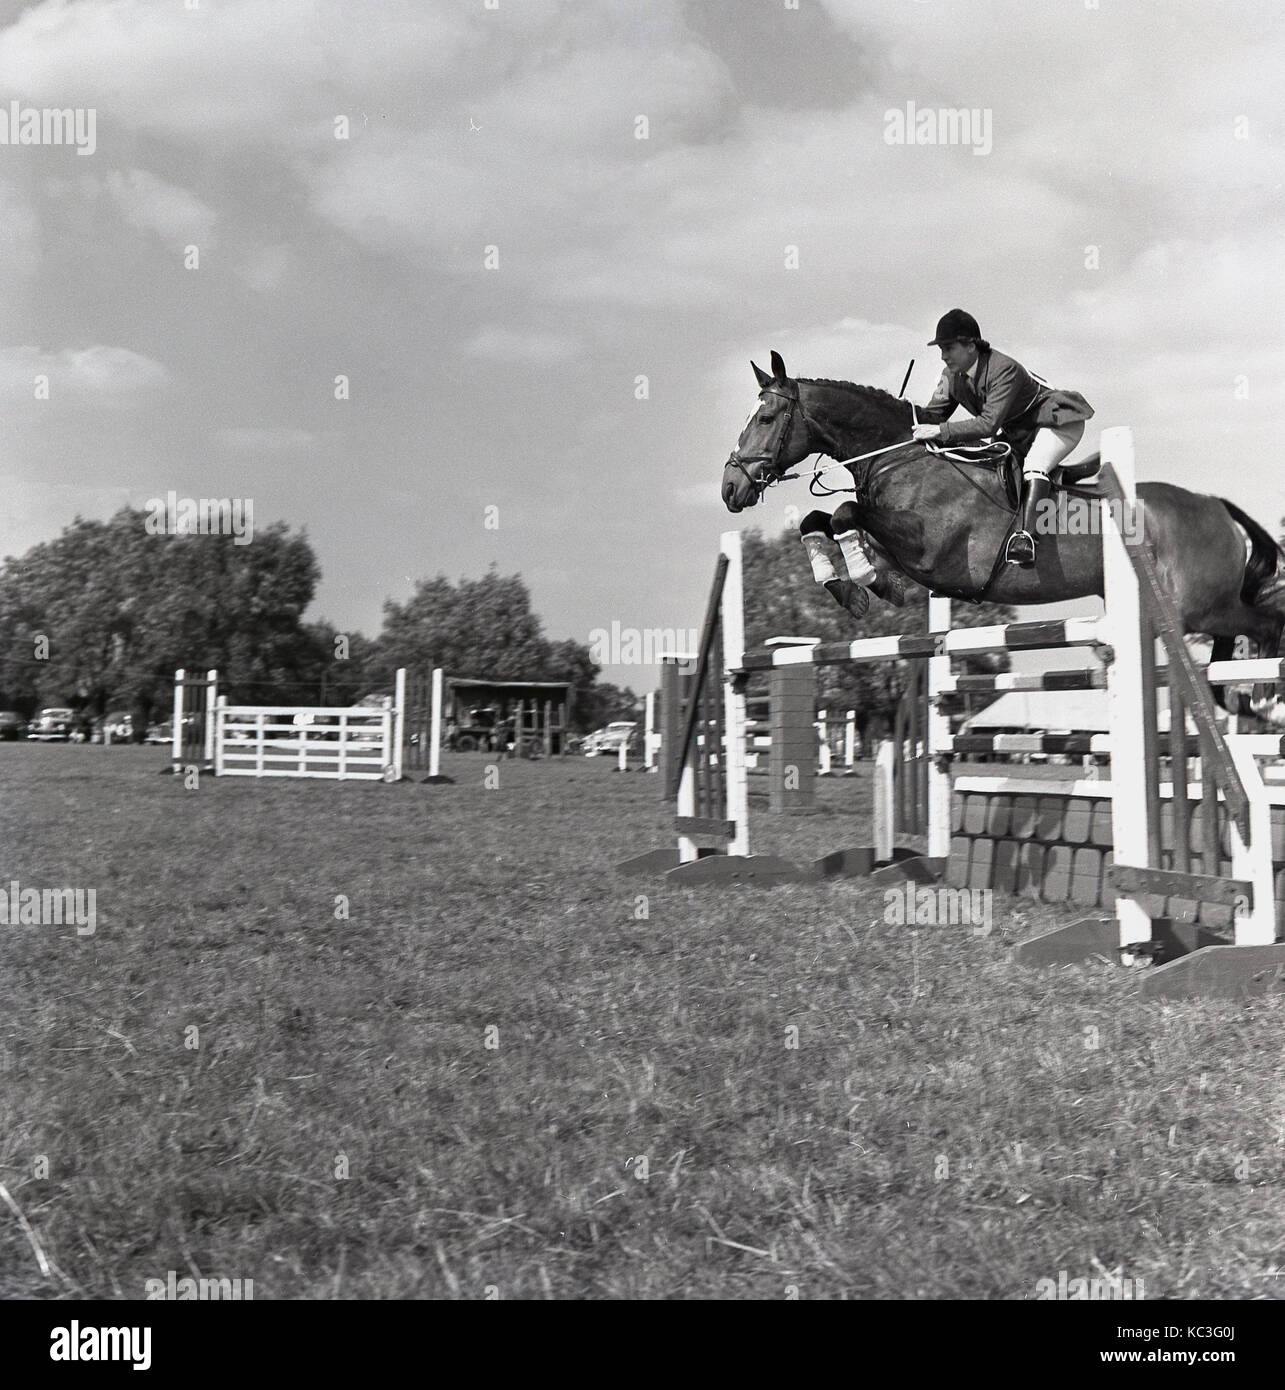 1964, historical, a male show jumper wearing his attire and hat with horse leaps over an obstacle at a outside show - Stock Image